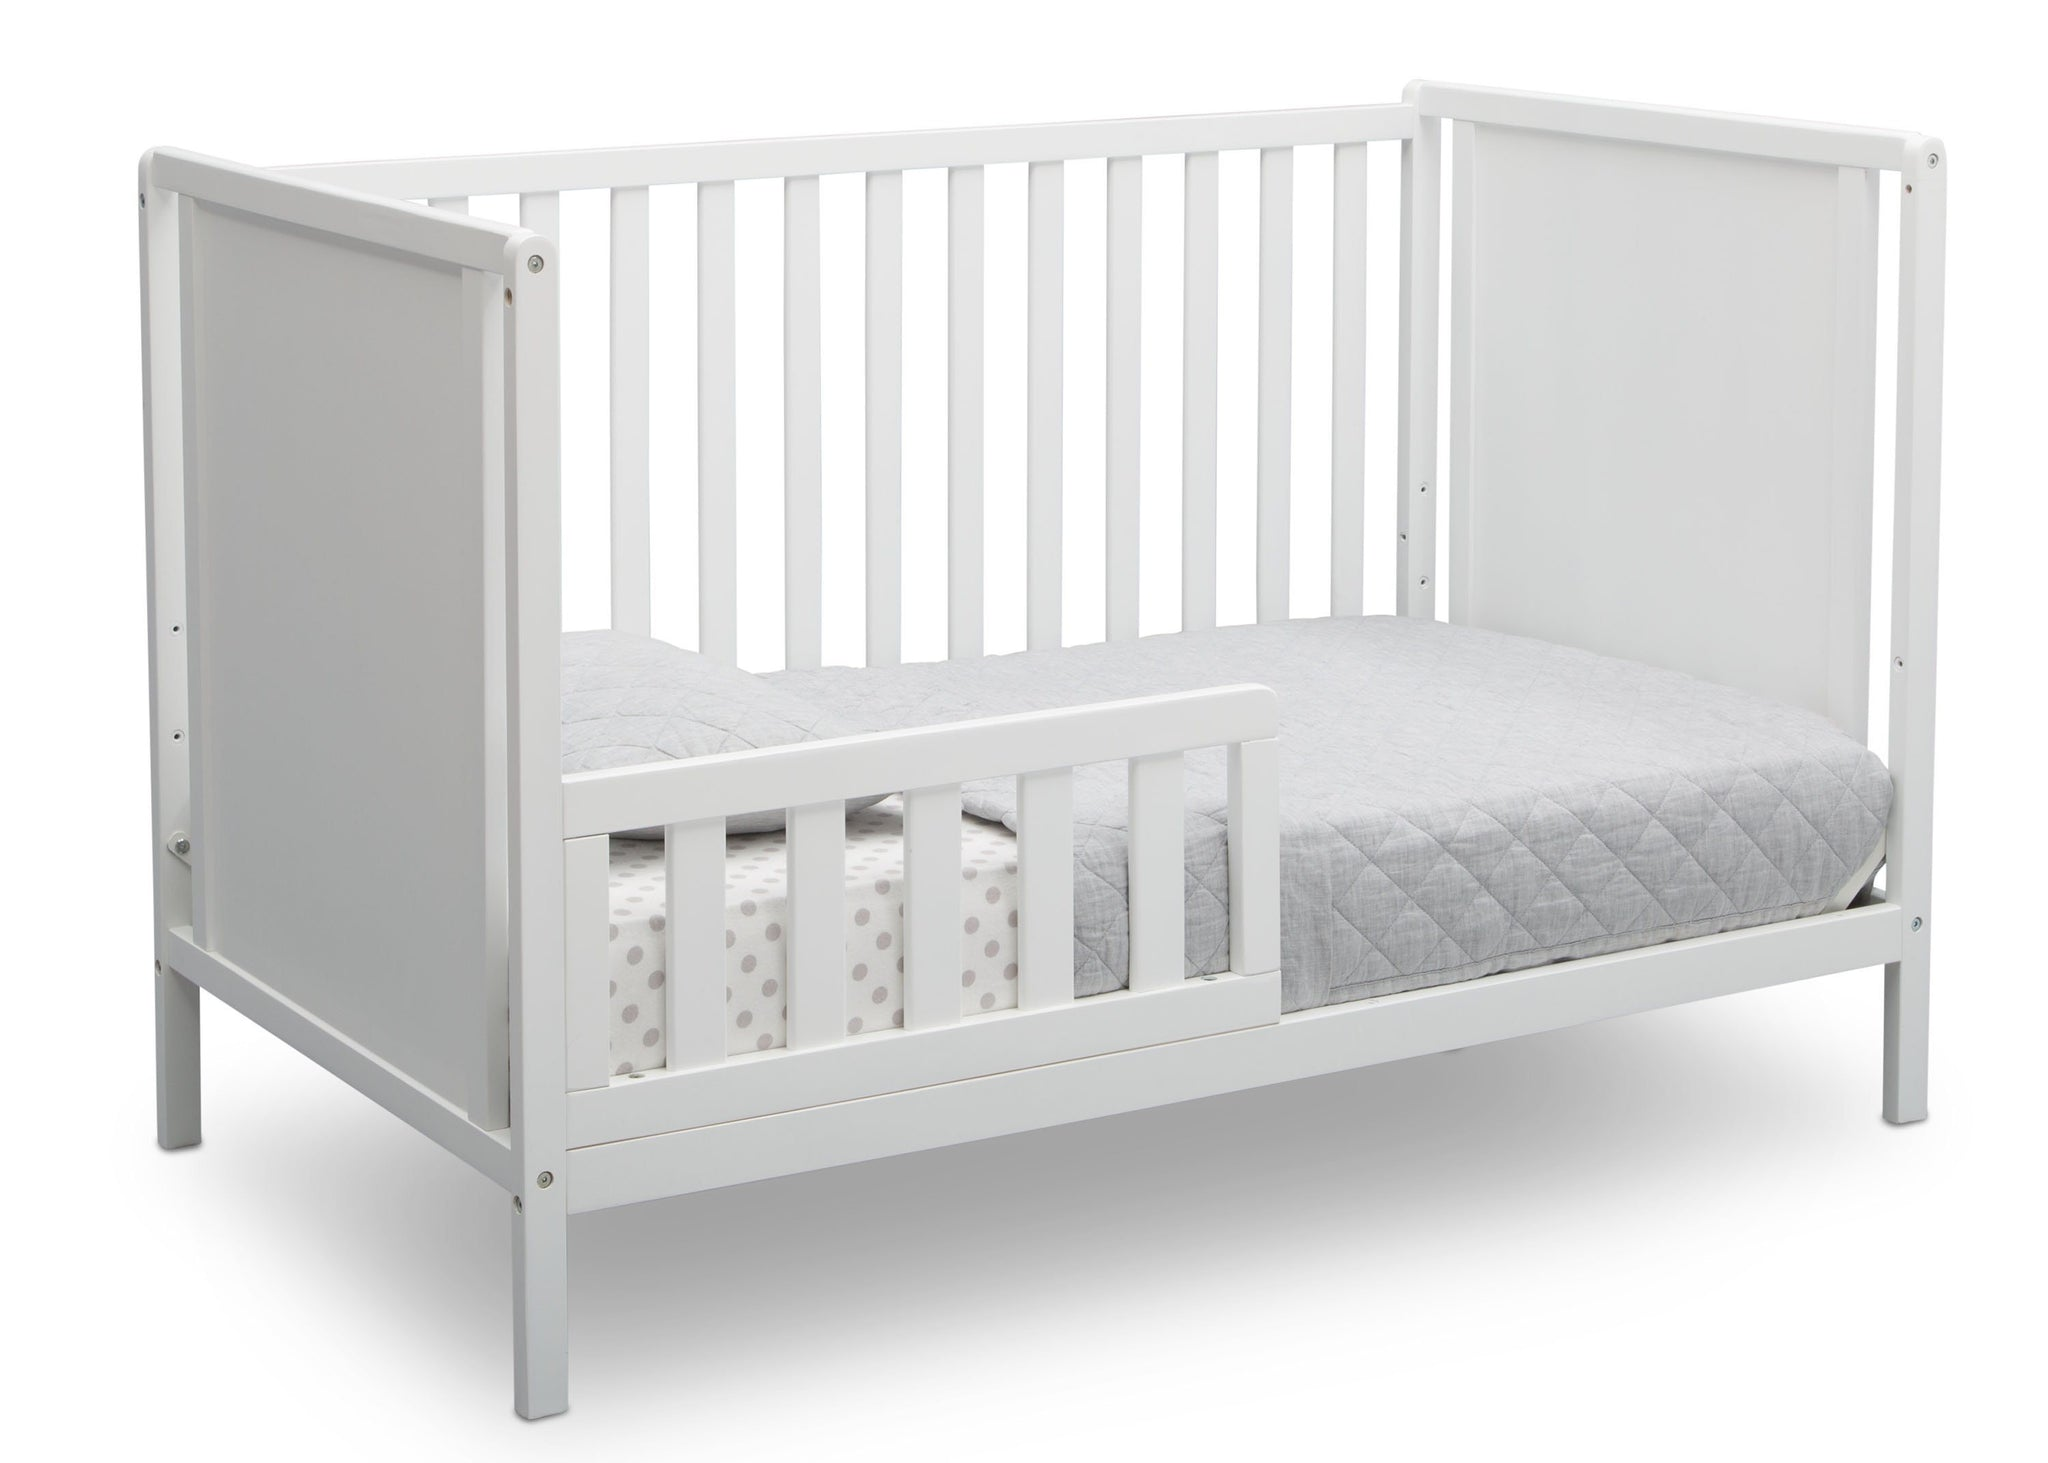 Delta Children Bianca White (130) Heartland Classic 4-in-1 Convertible Crib, Toddler Bed Angle, c4c